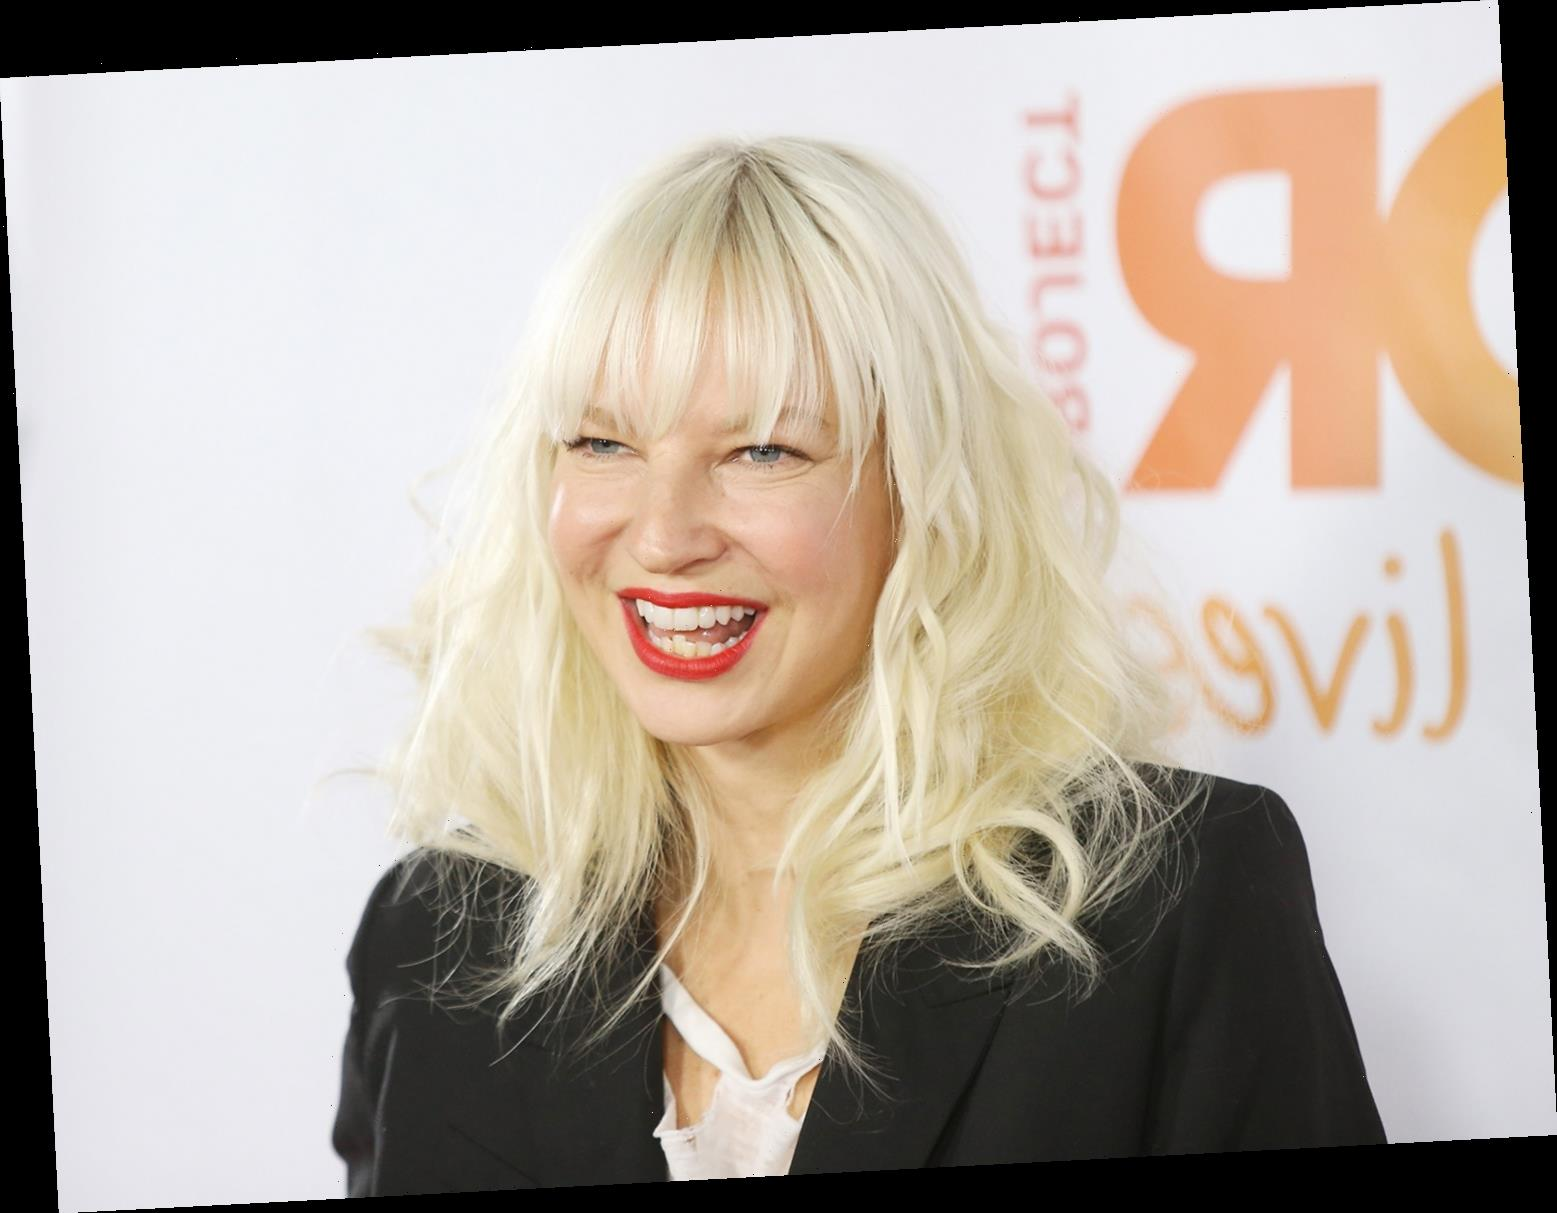 Sia Shocks Radio Hosts After Going to the Bathroom During Live Interview: 'I Have No Shame'